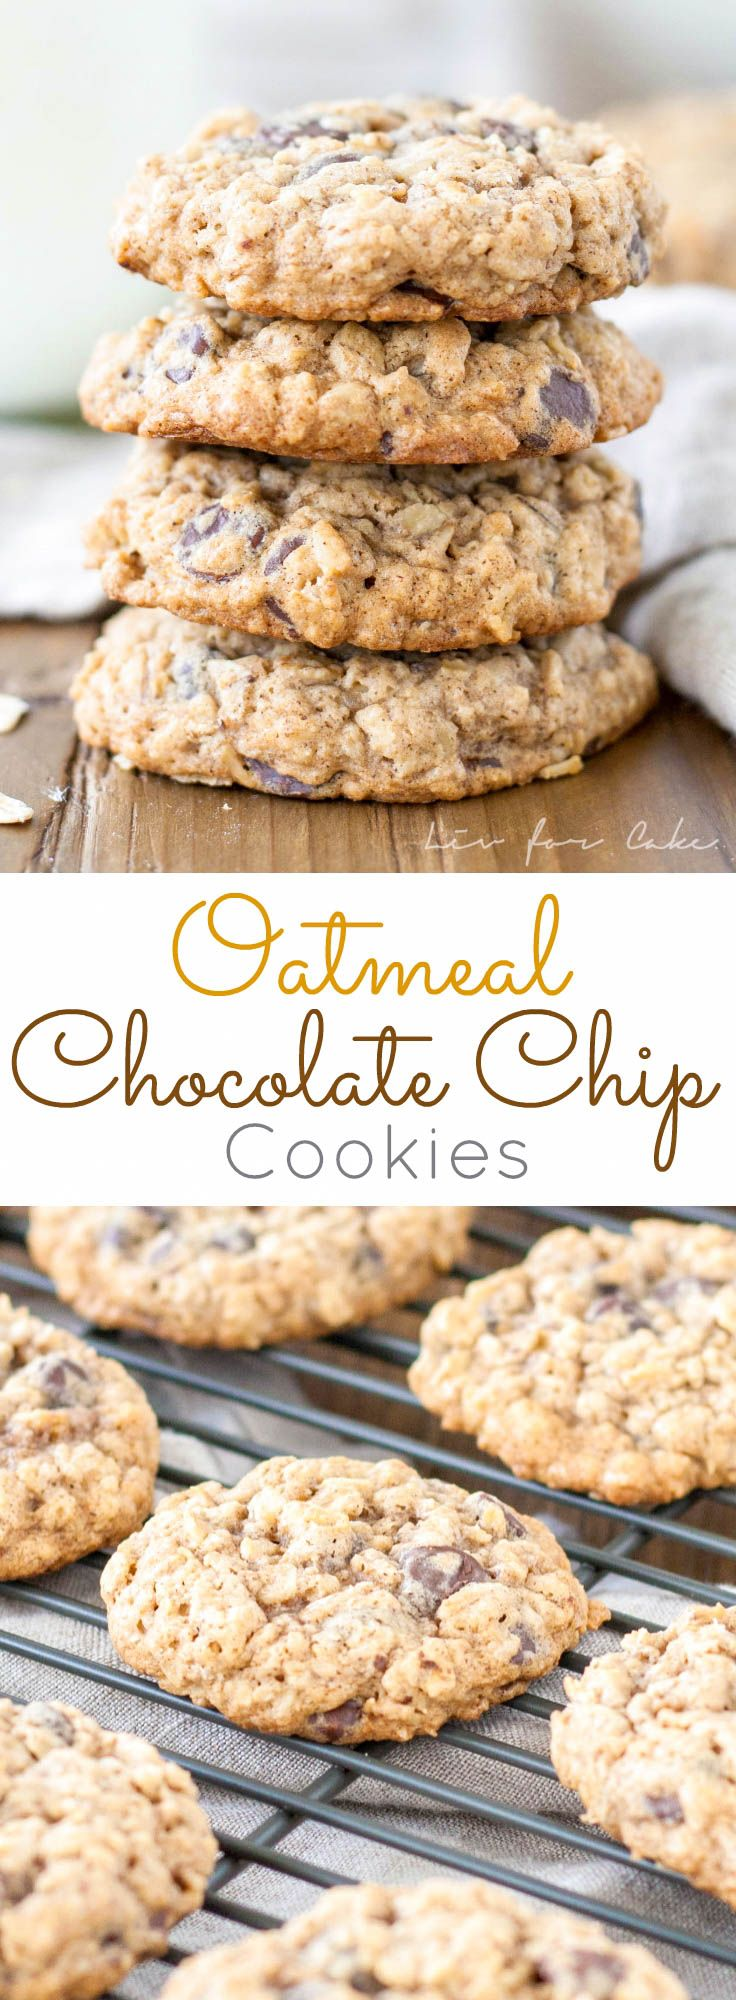 Soft and chewy oatmeal chocolate chip cookies | livforcake.com ...